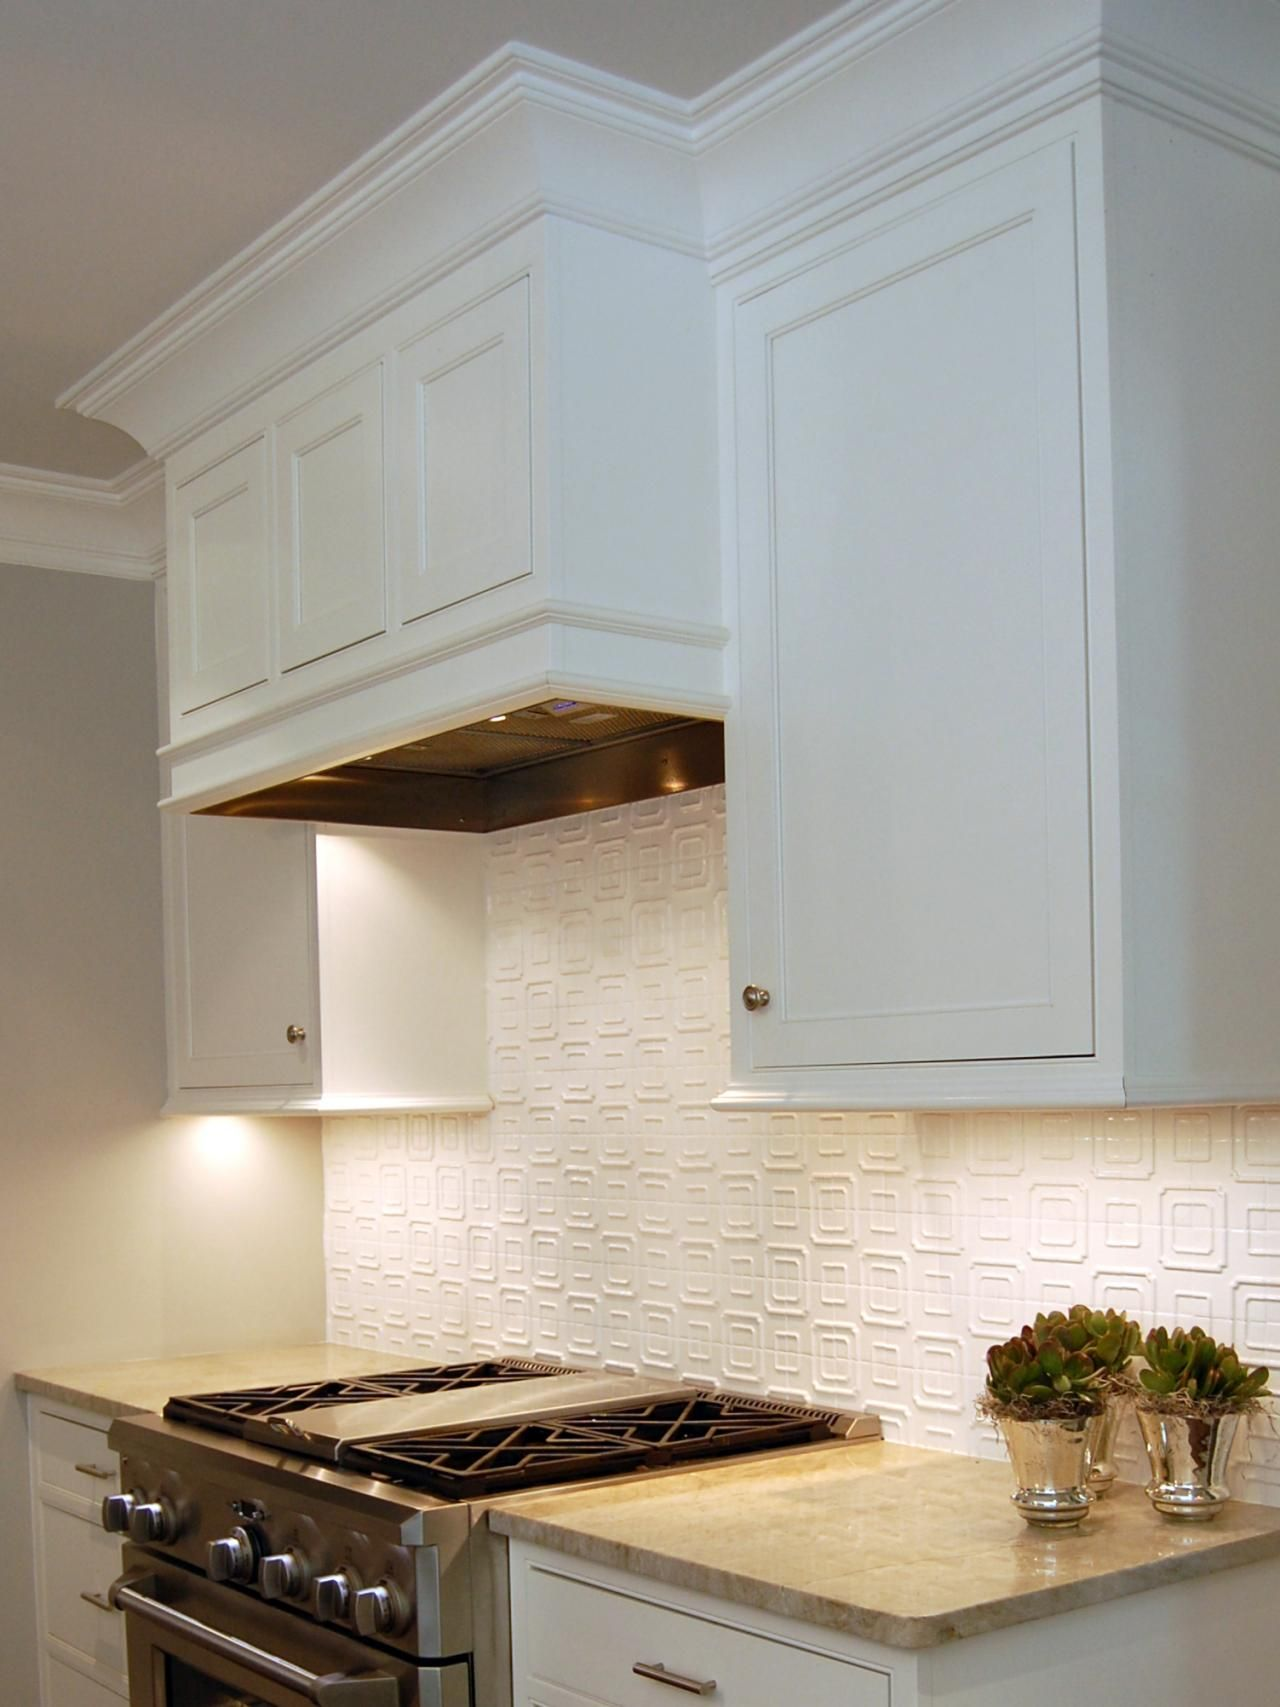 The hidden range hood helps the open kitchen blend easily for Vent hoods for kitchens